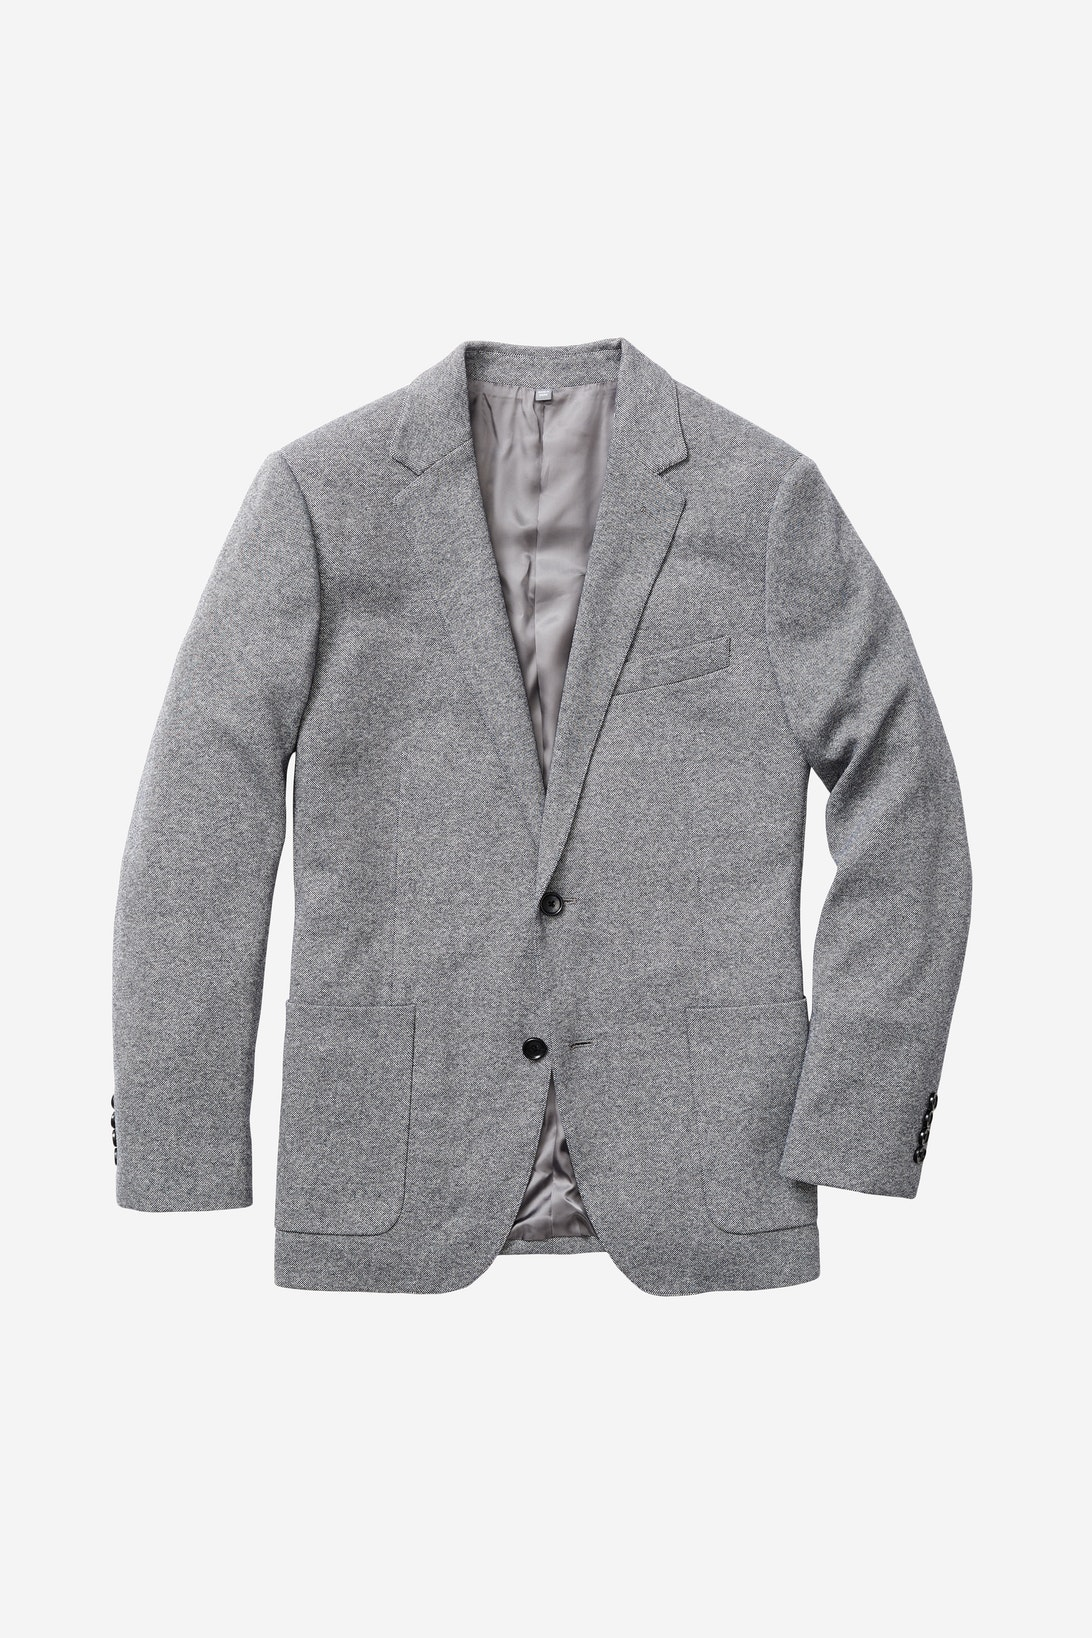 Italian Knit Blazer - Bonobos gives us a blazer that works well in the office but also for more casual occasions. Looks great with jeans and chinos.